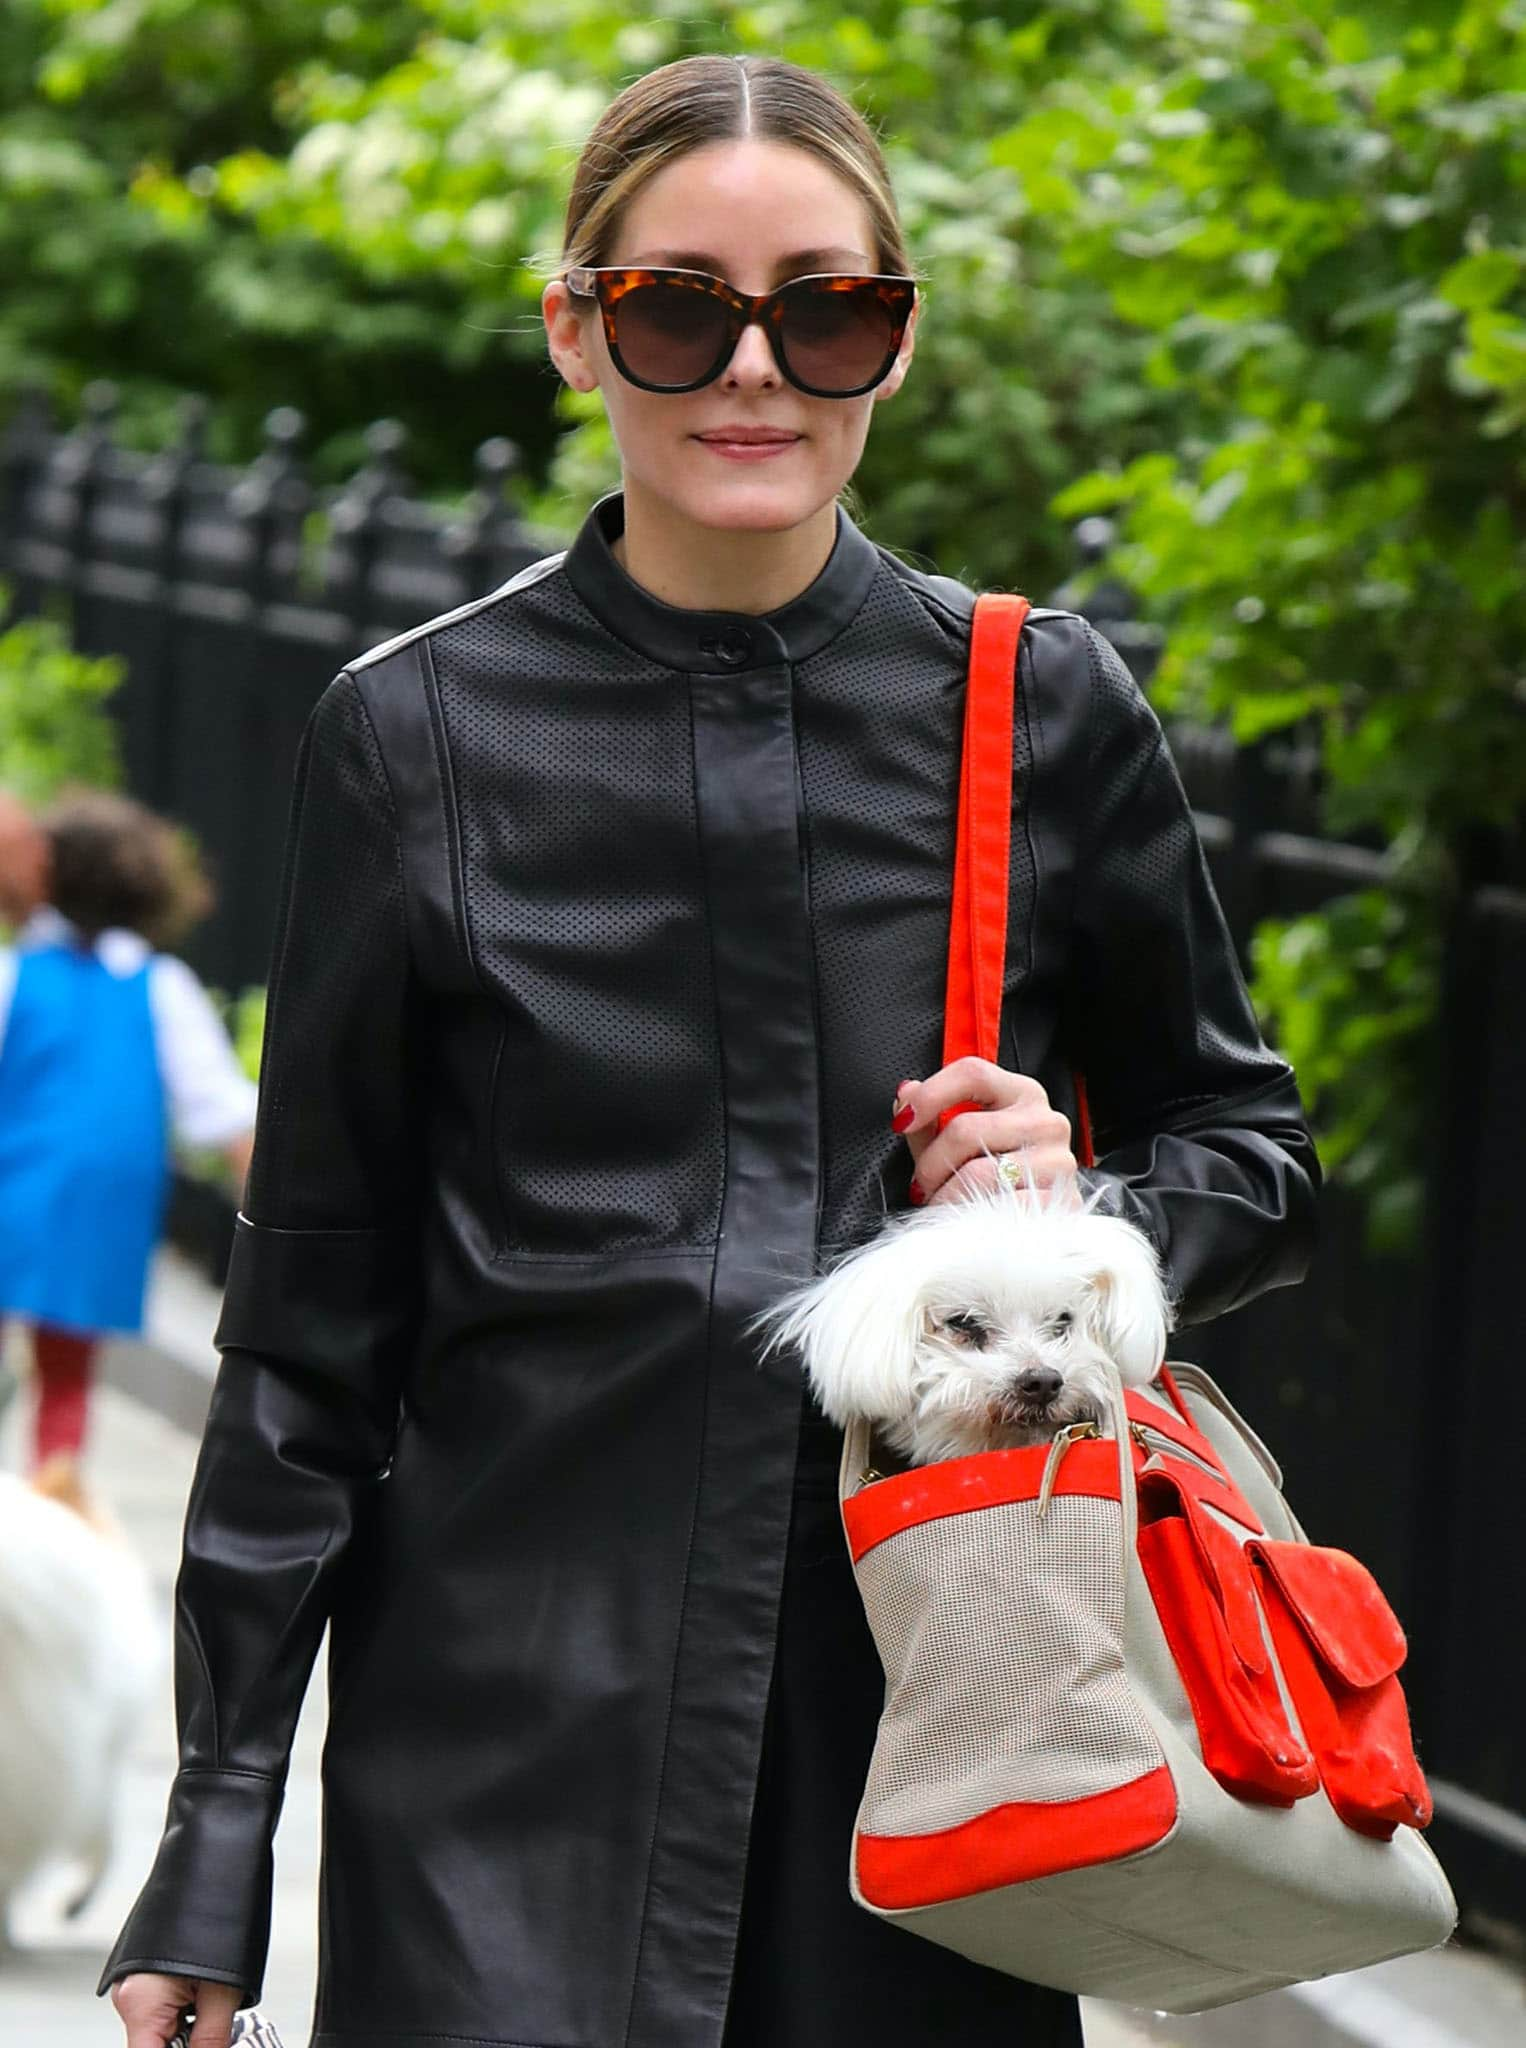 Olivia Palermo pulls her tresses into a neat ponytail as she carries Mr. Butler in a red-and-beige dog carrier